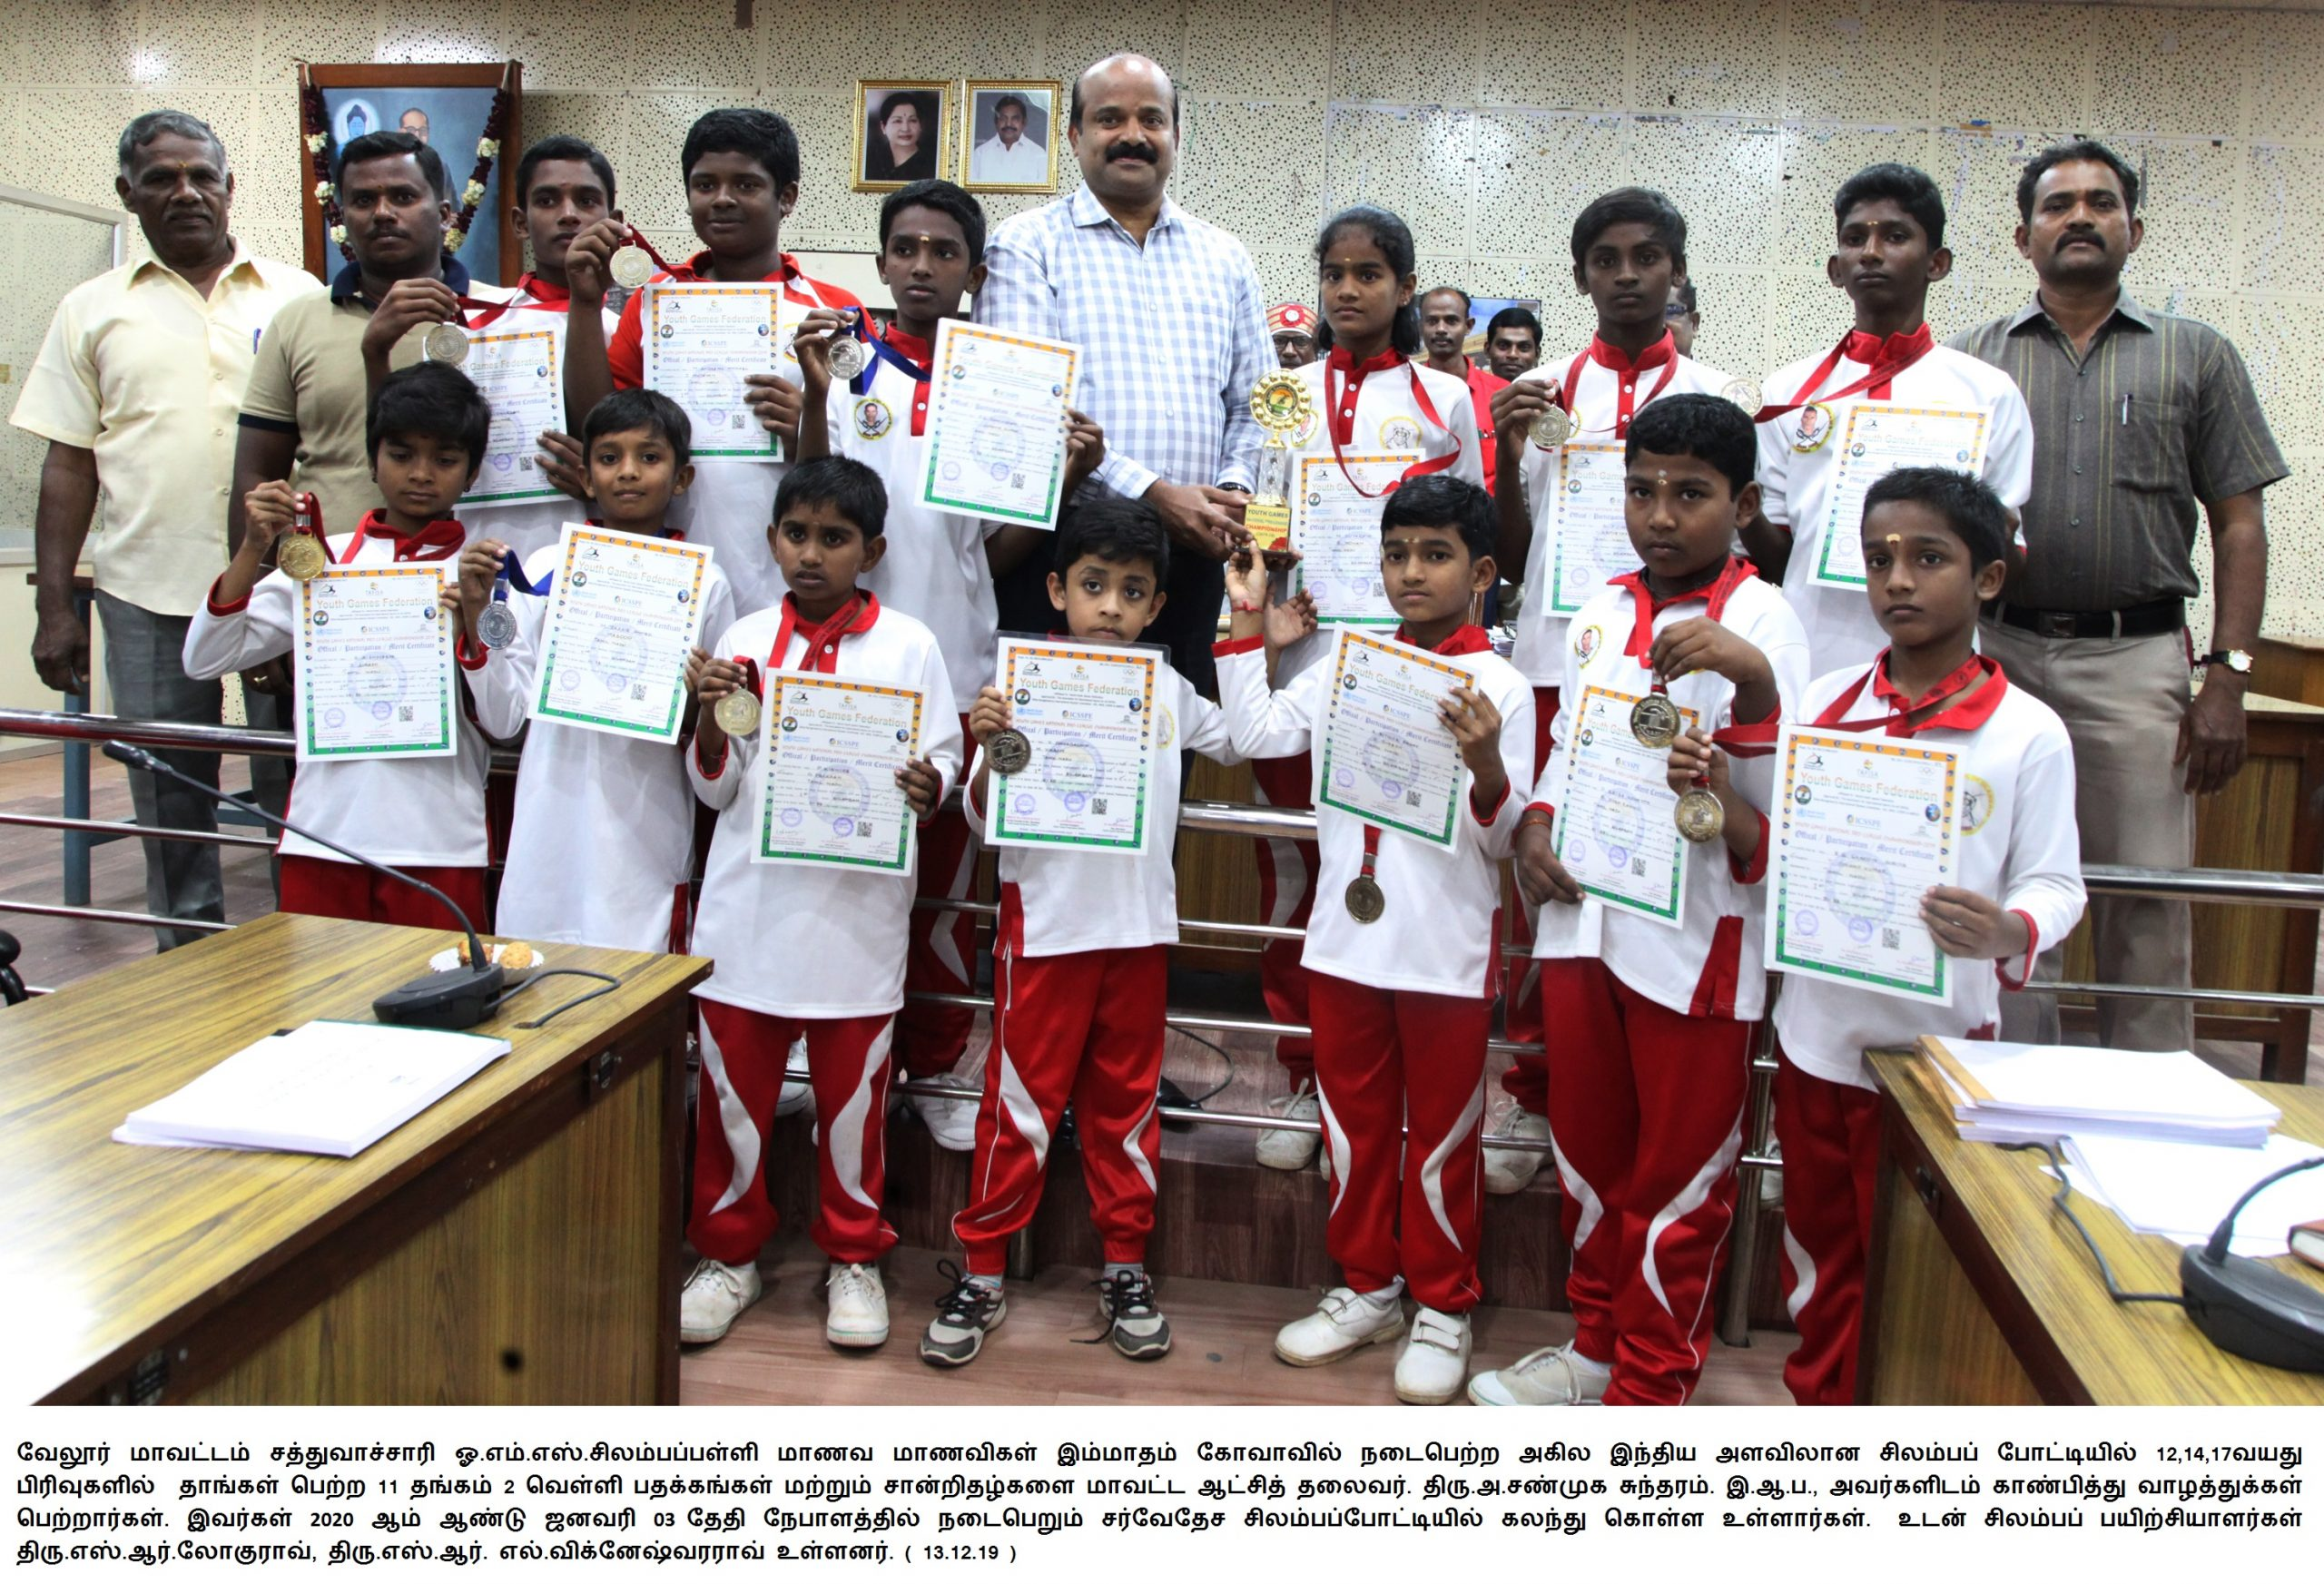 Congratulations to the students who won the Silambam competition 13/12/2019